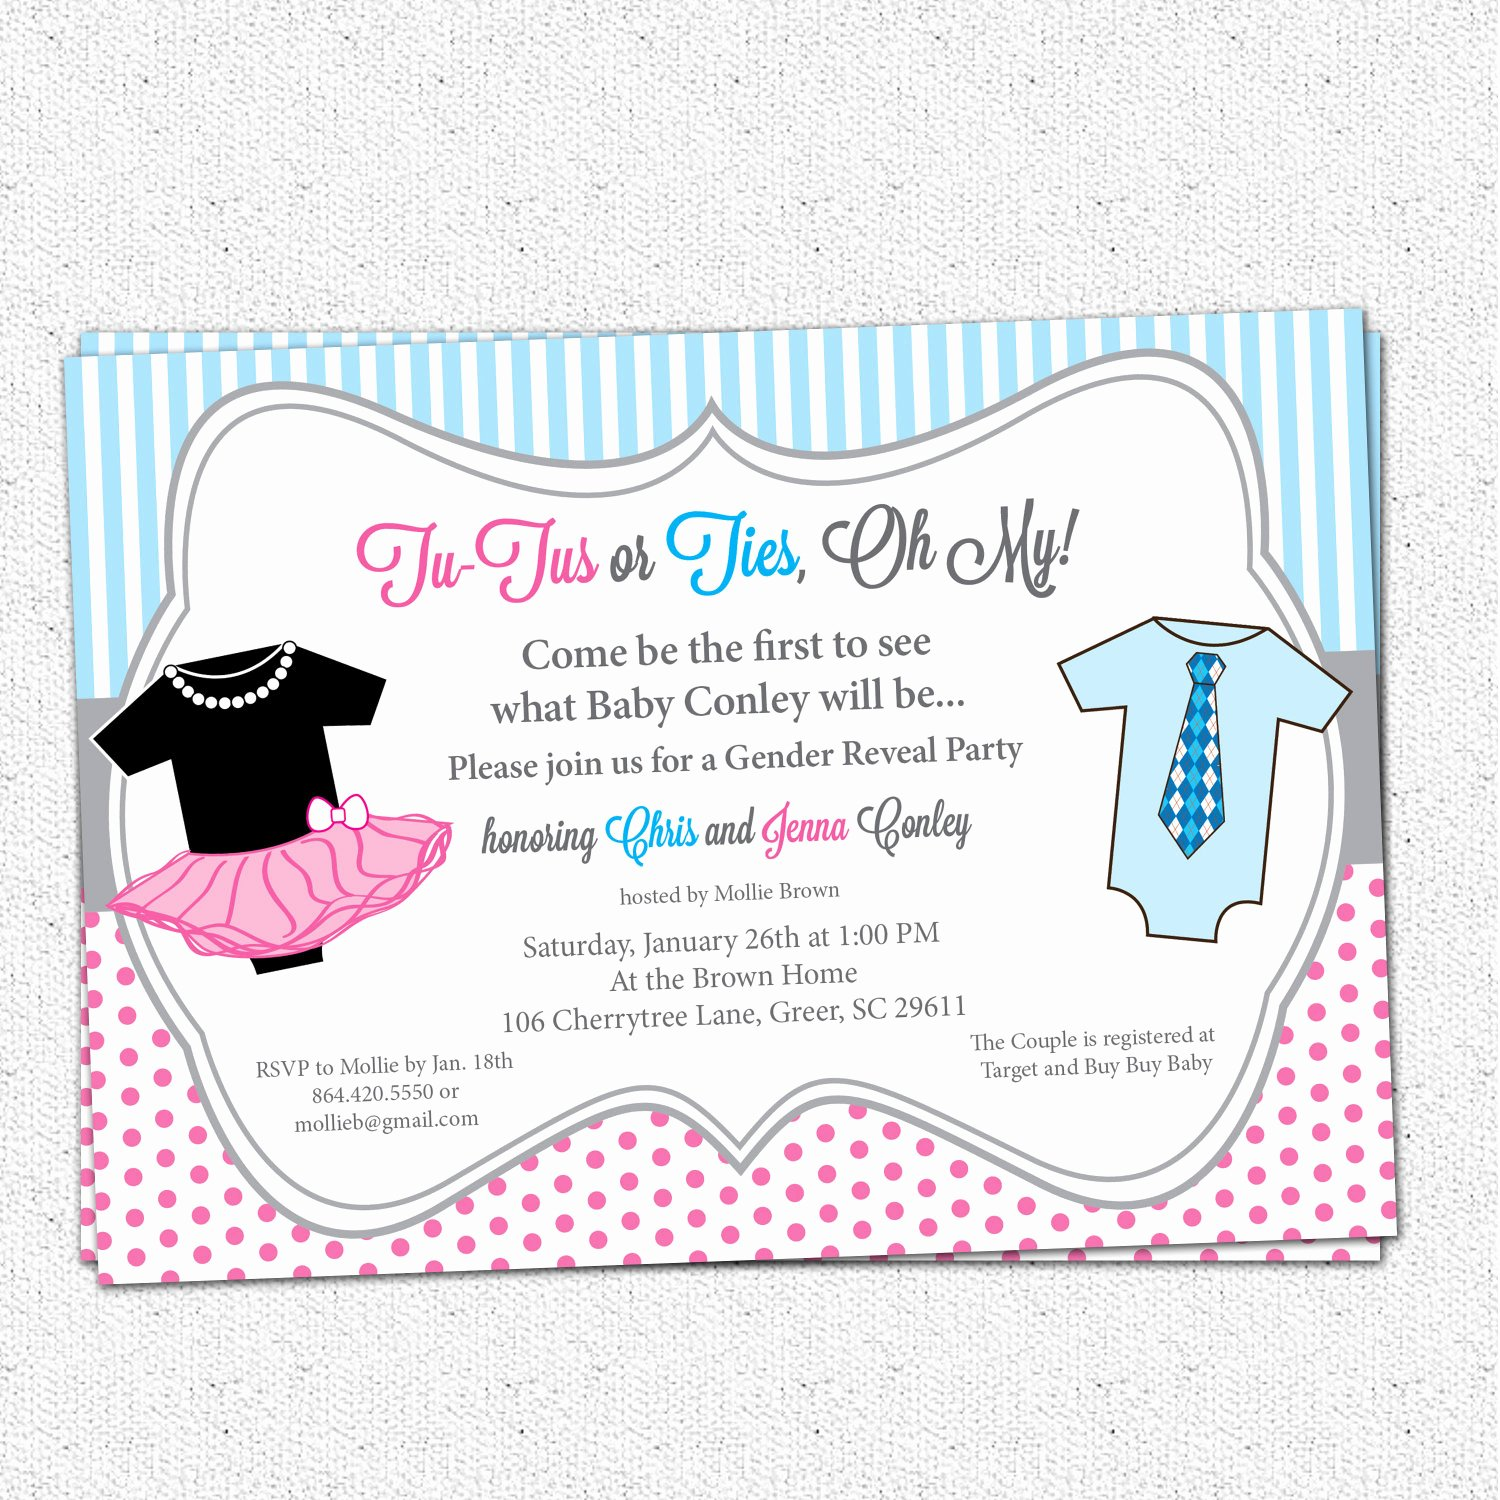 Gender Reveal Invitation Templates Beautiful Free Gender Reveal Party Invitations